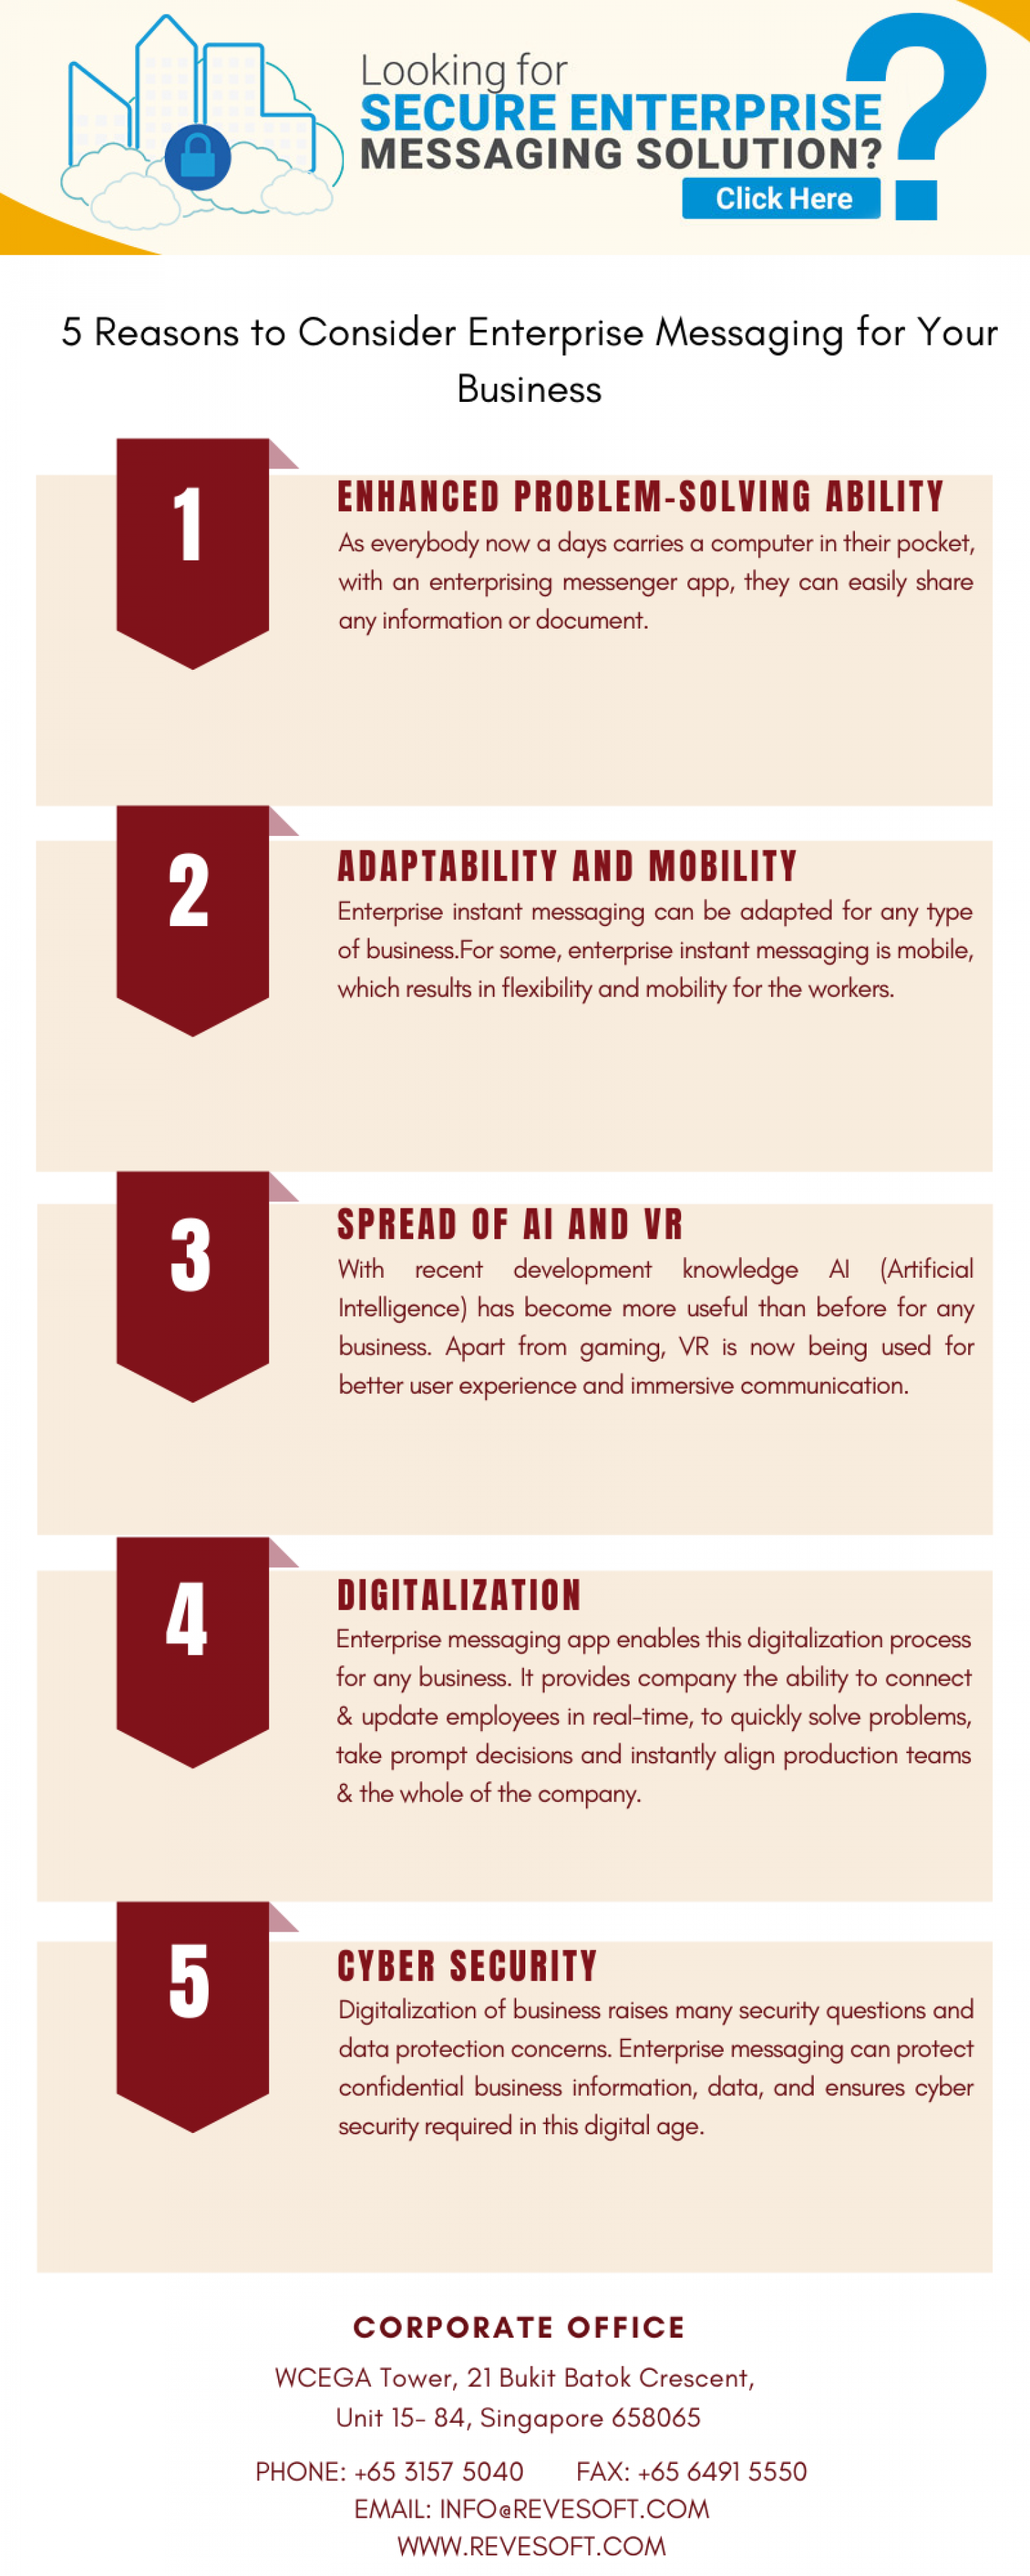 5 Reasons to Consider Enterprise Messaging for Your Business Infographic